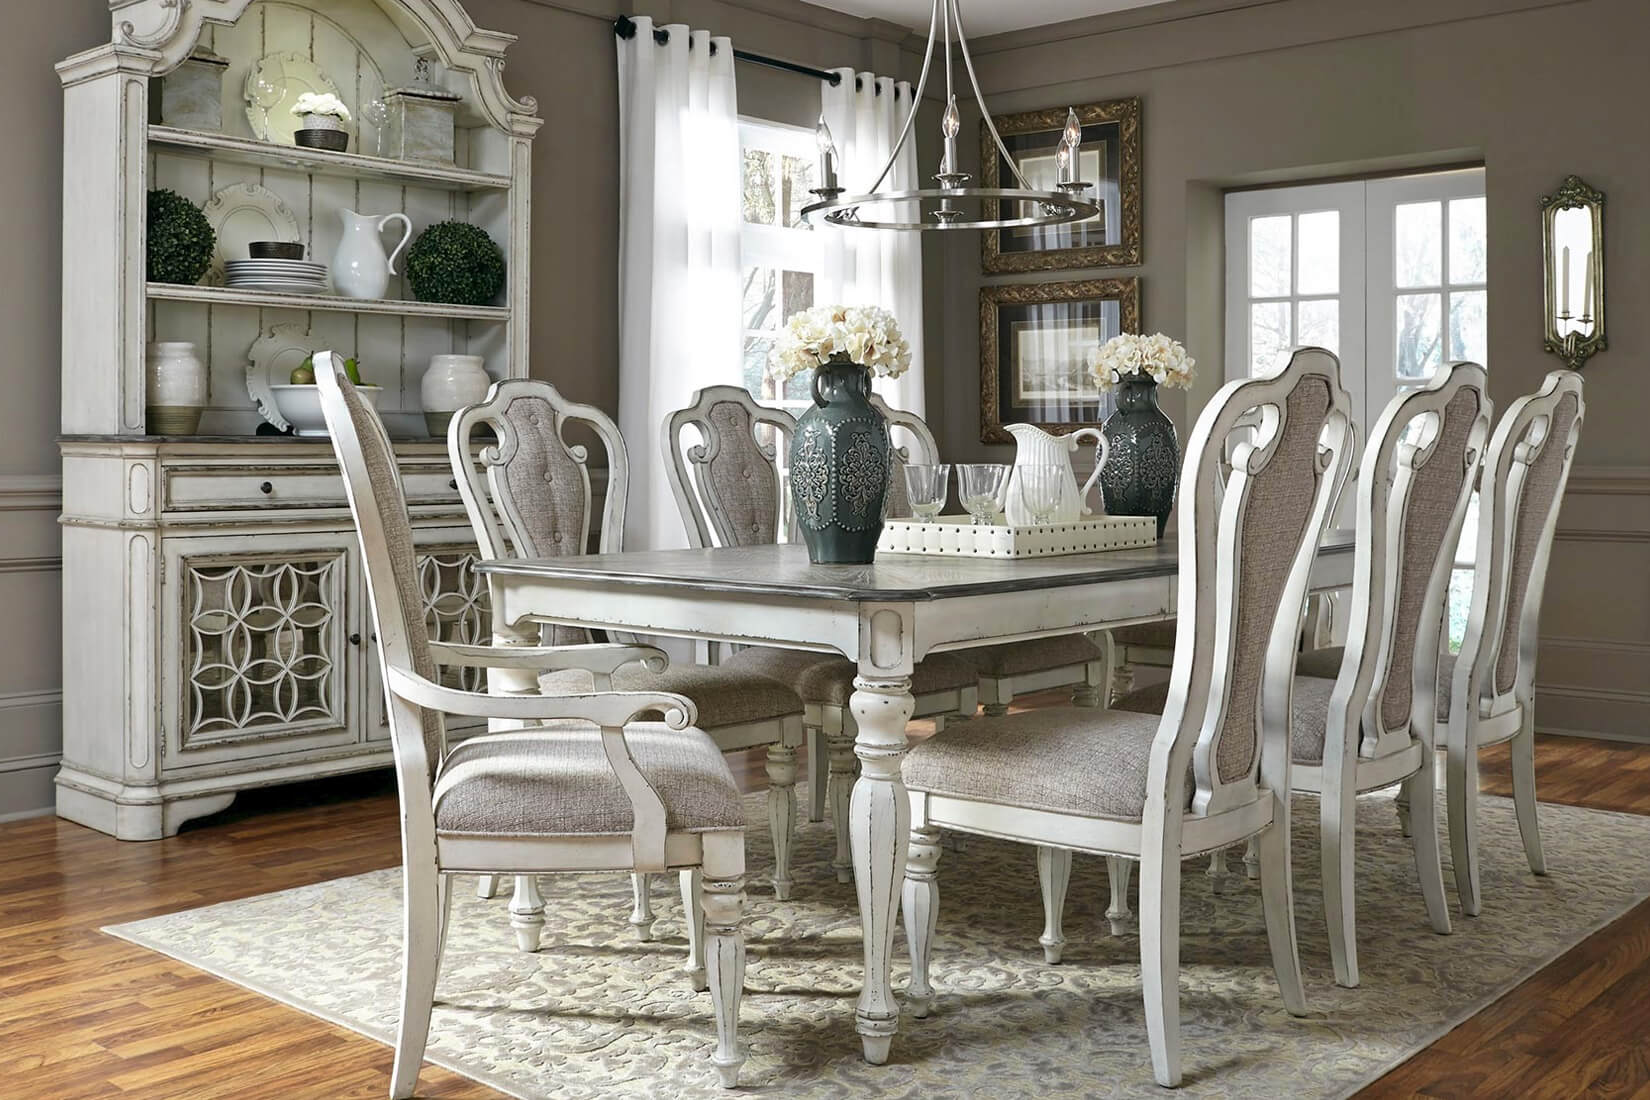 dining-room-furniture.jpg